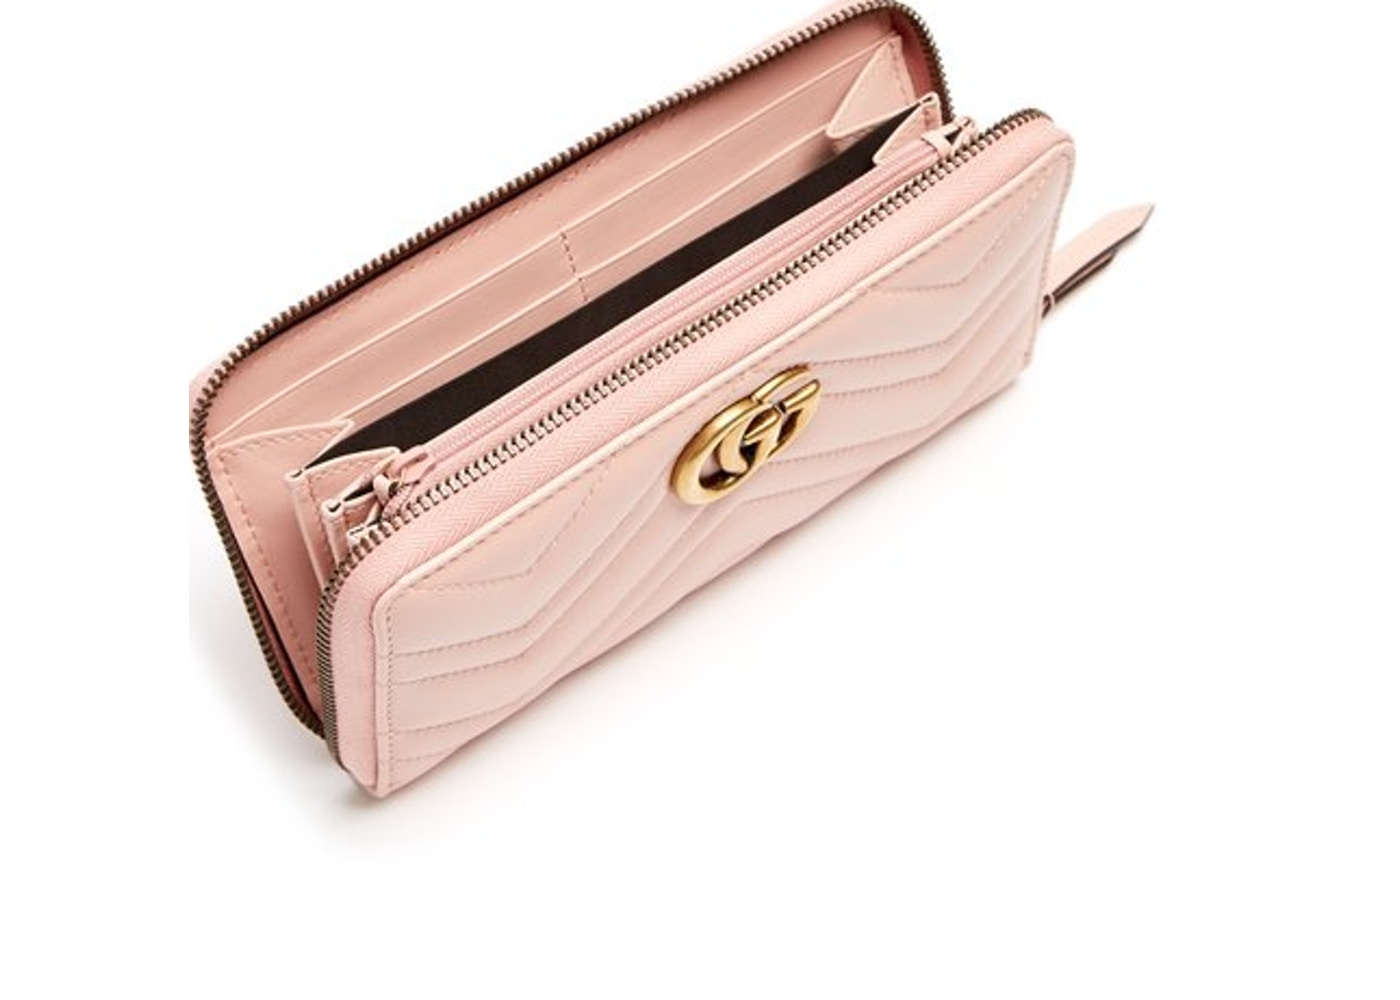 8e29b1f4807 Gucci Marmont Wallet Zip Around Matelasse Perfect Pink